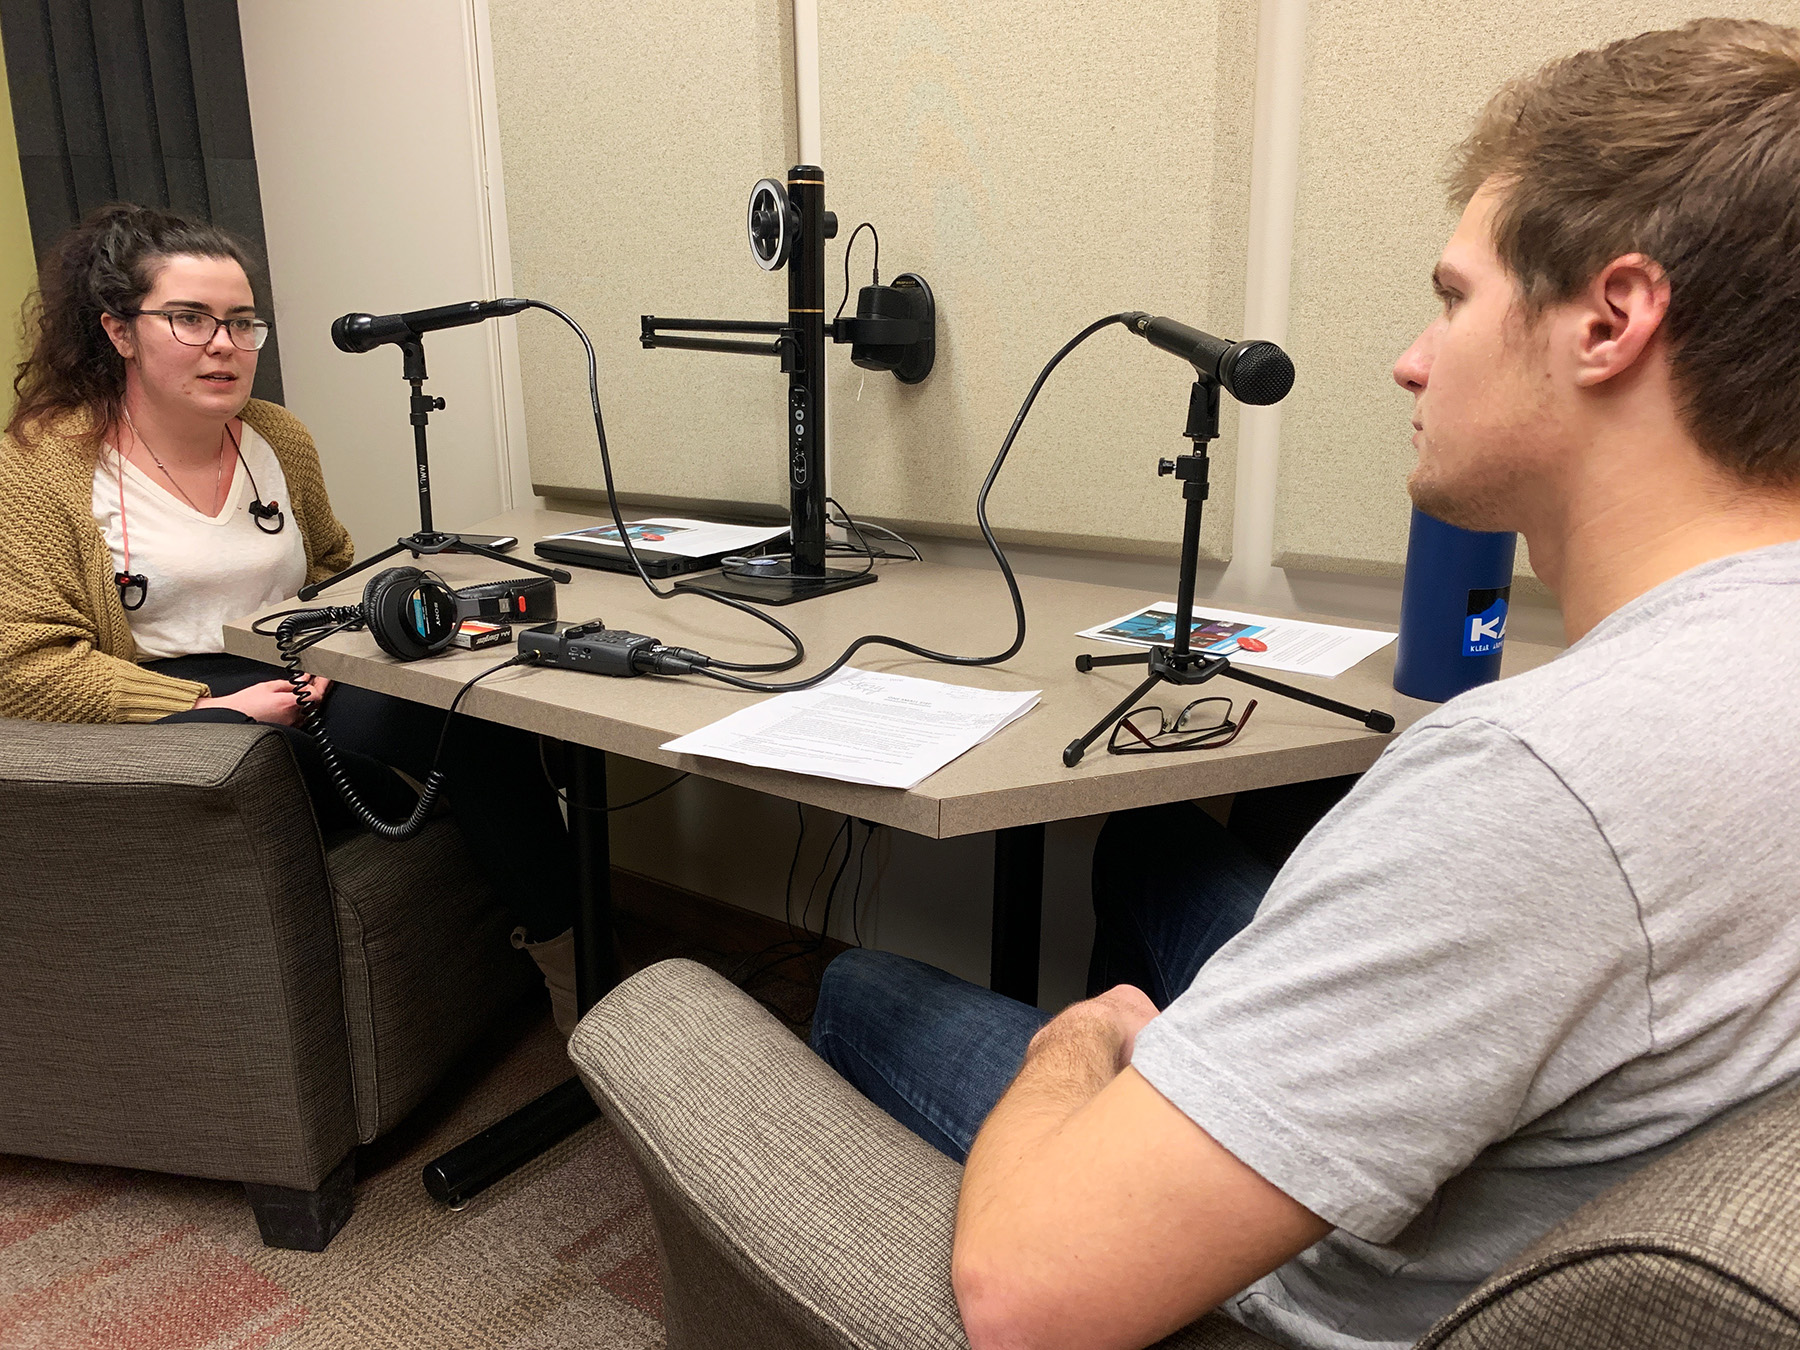 UM students Jack and Ashli talk about everything from prison reform to political stereotypes.